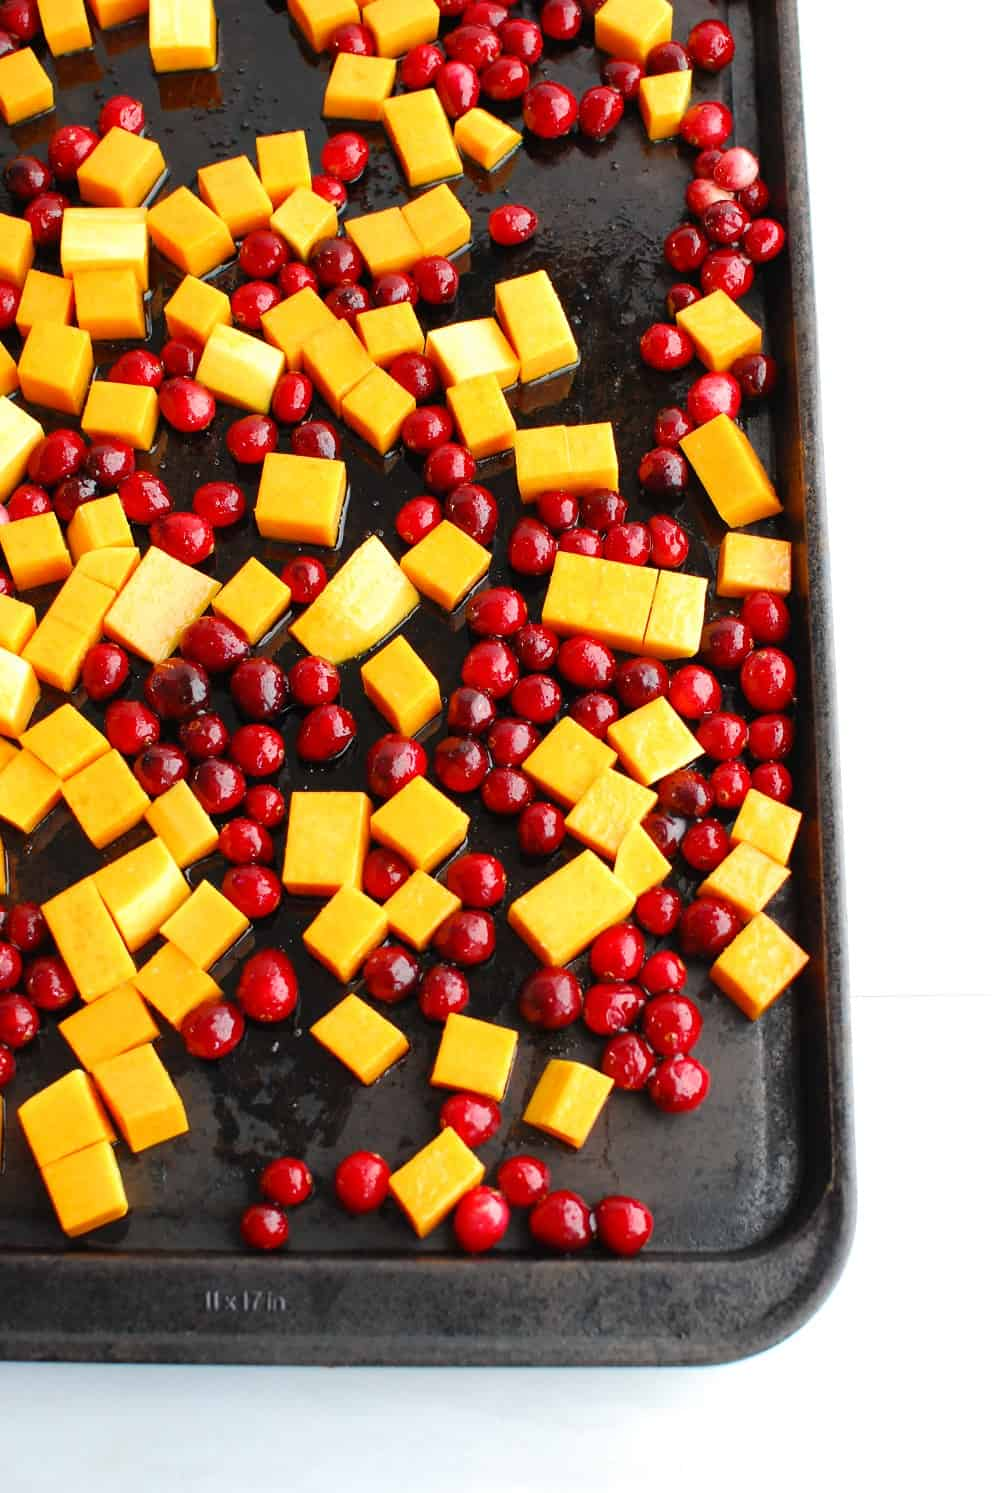 butternut squash and cranberries on a baking sheet prior to cooking